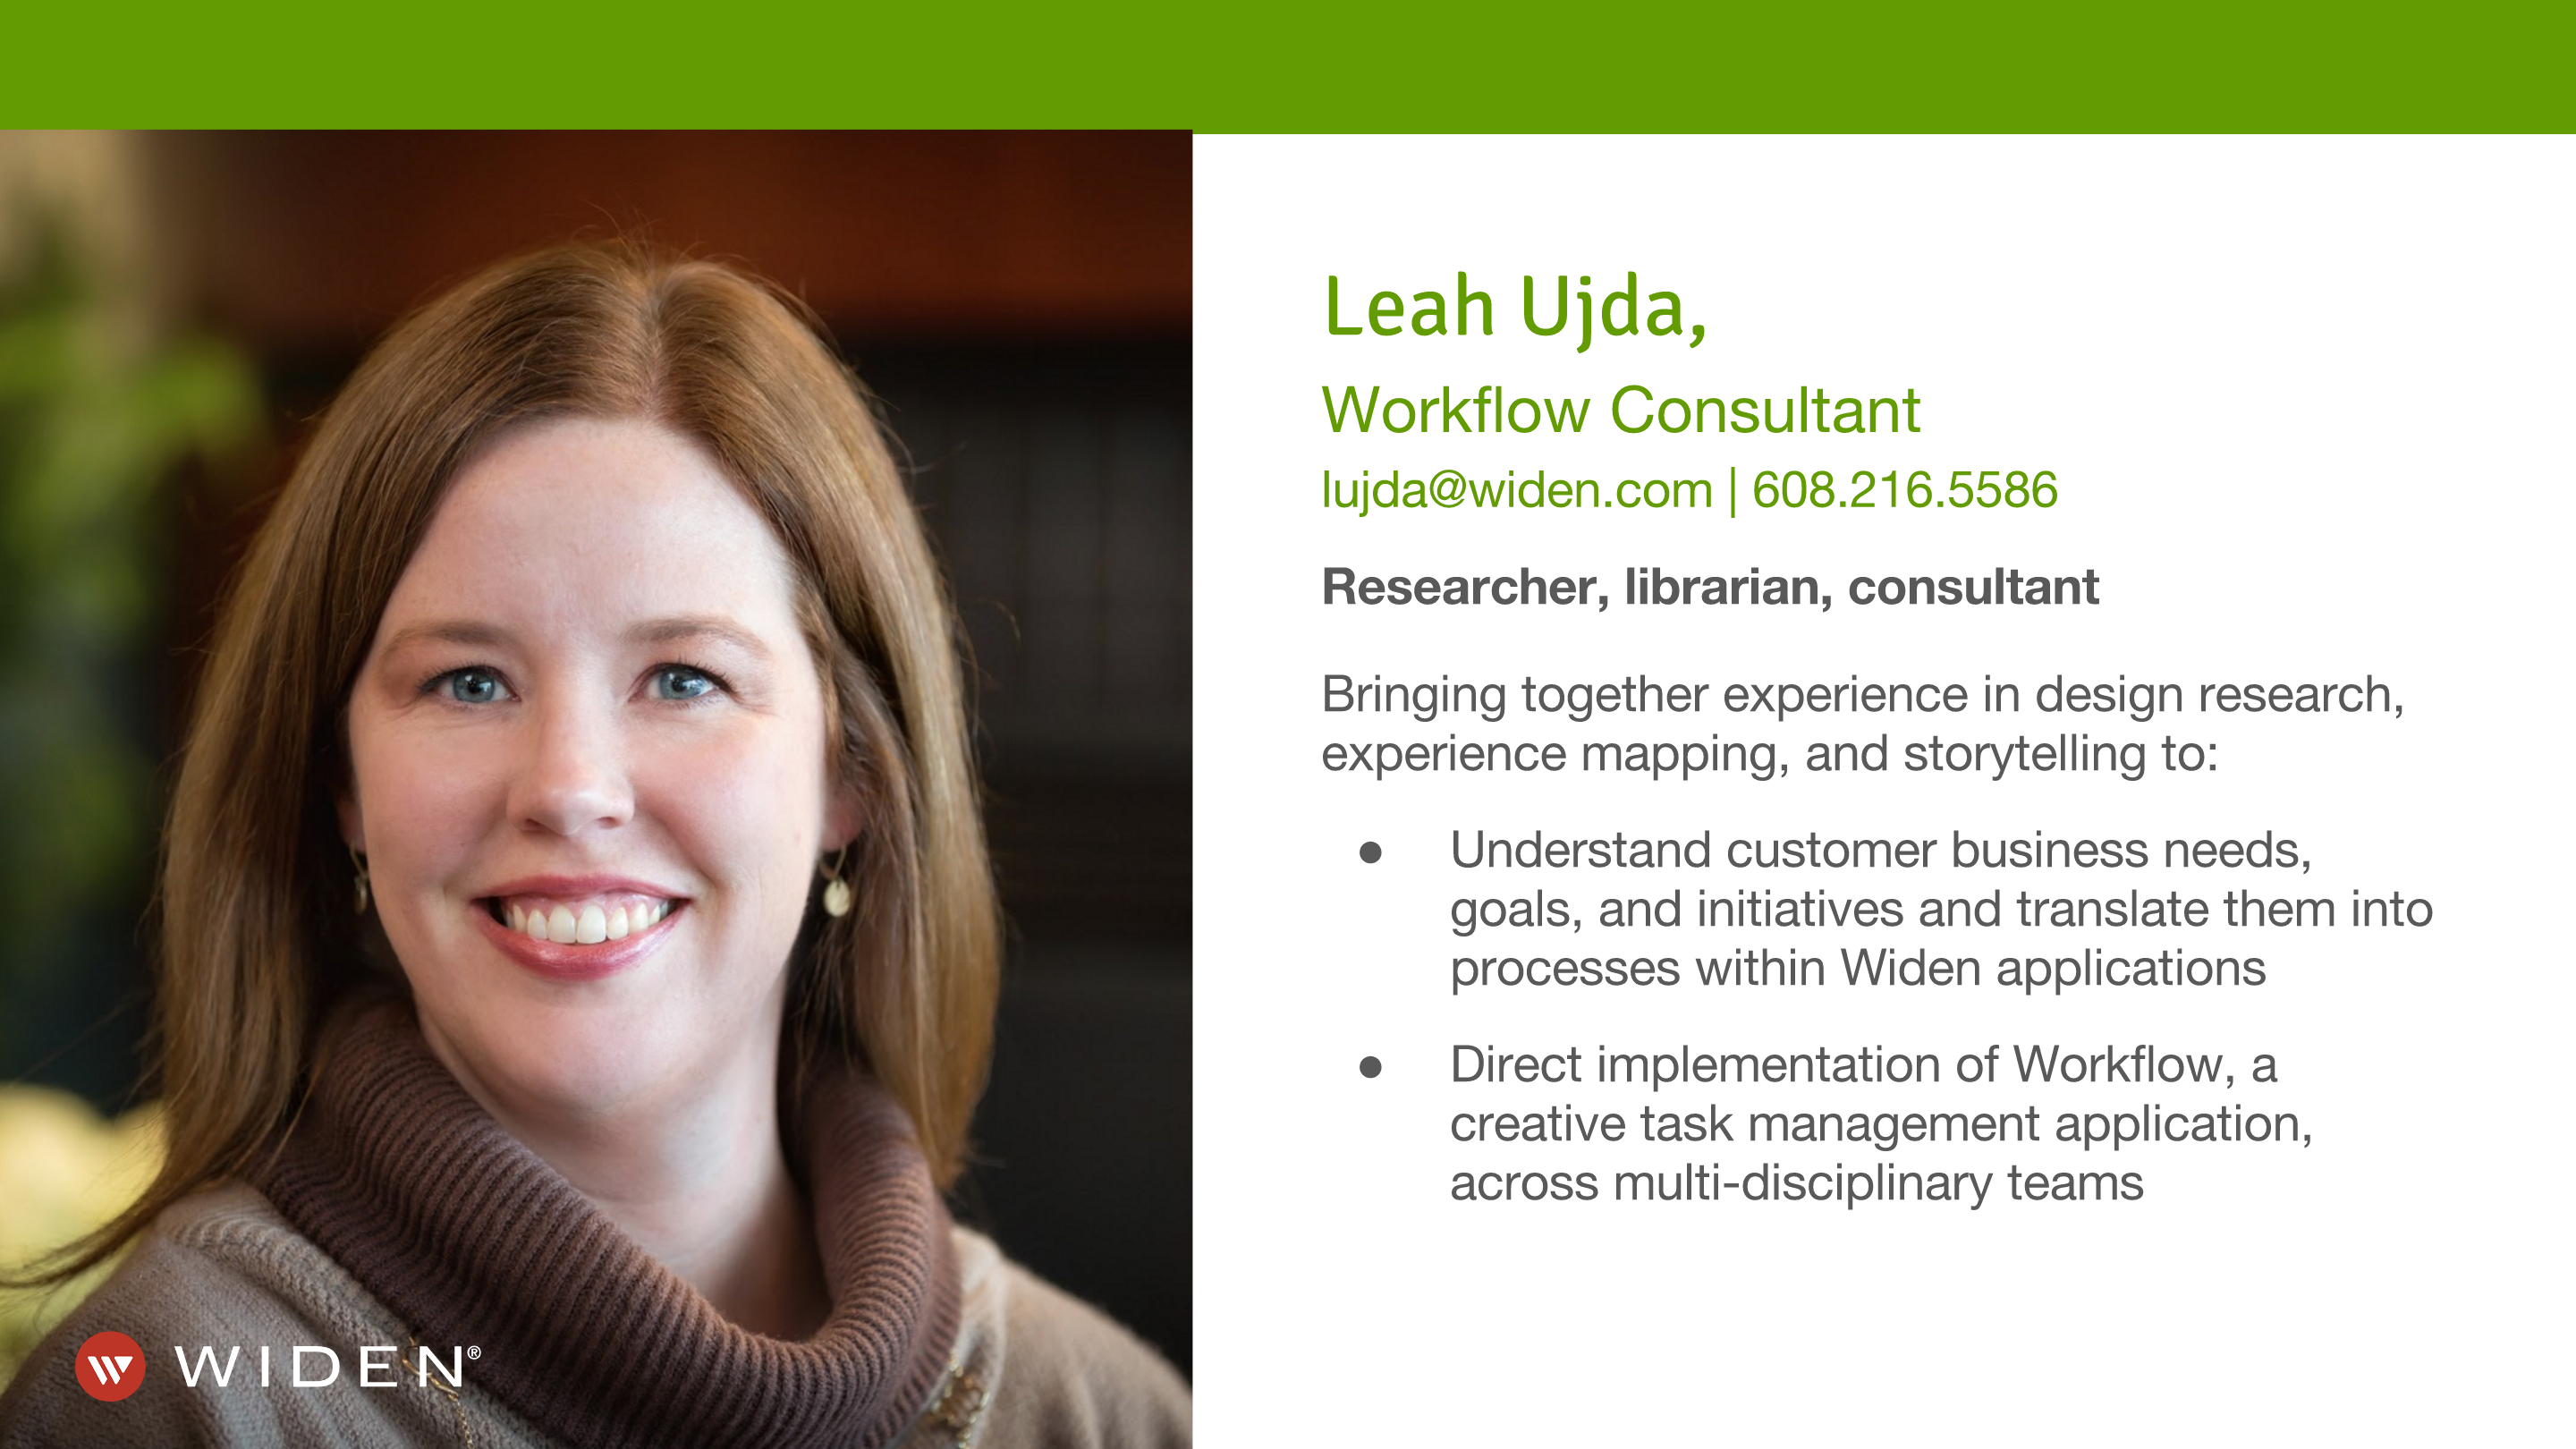 Widen Workflow Consultant Leah